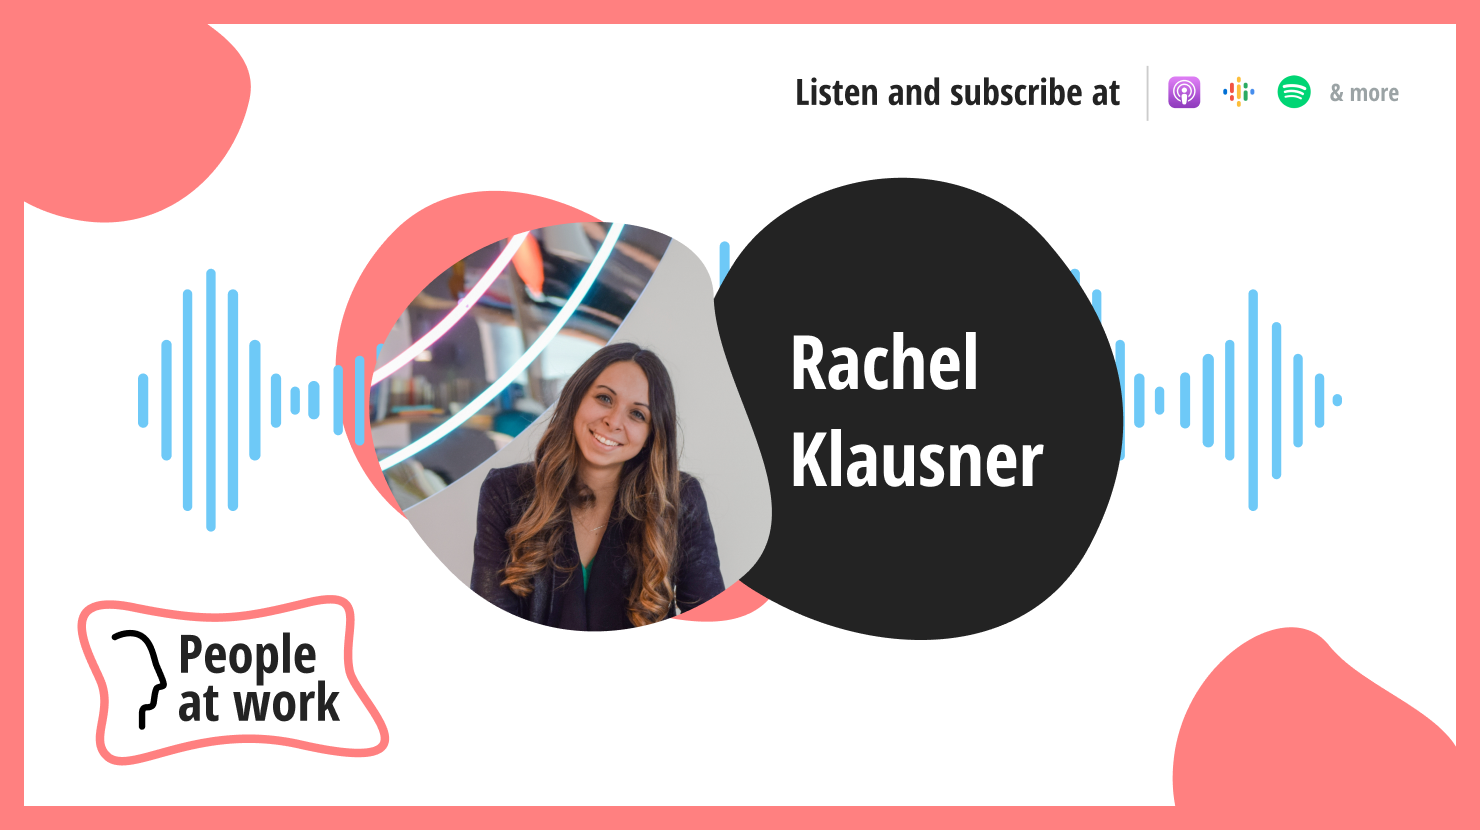 Social impact at work for greater good with Rachel Klausner